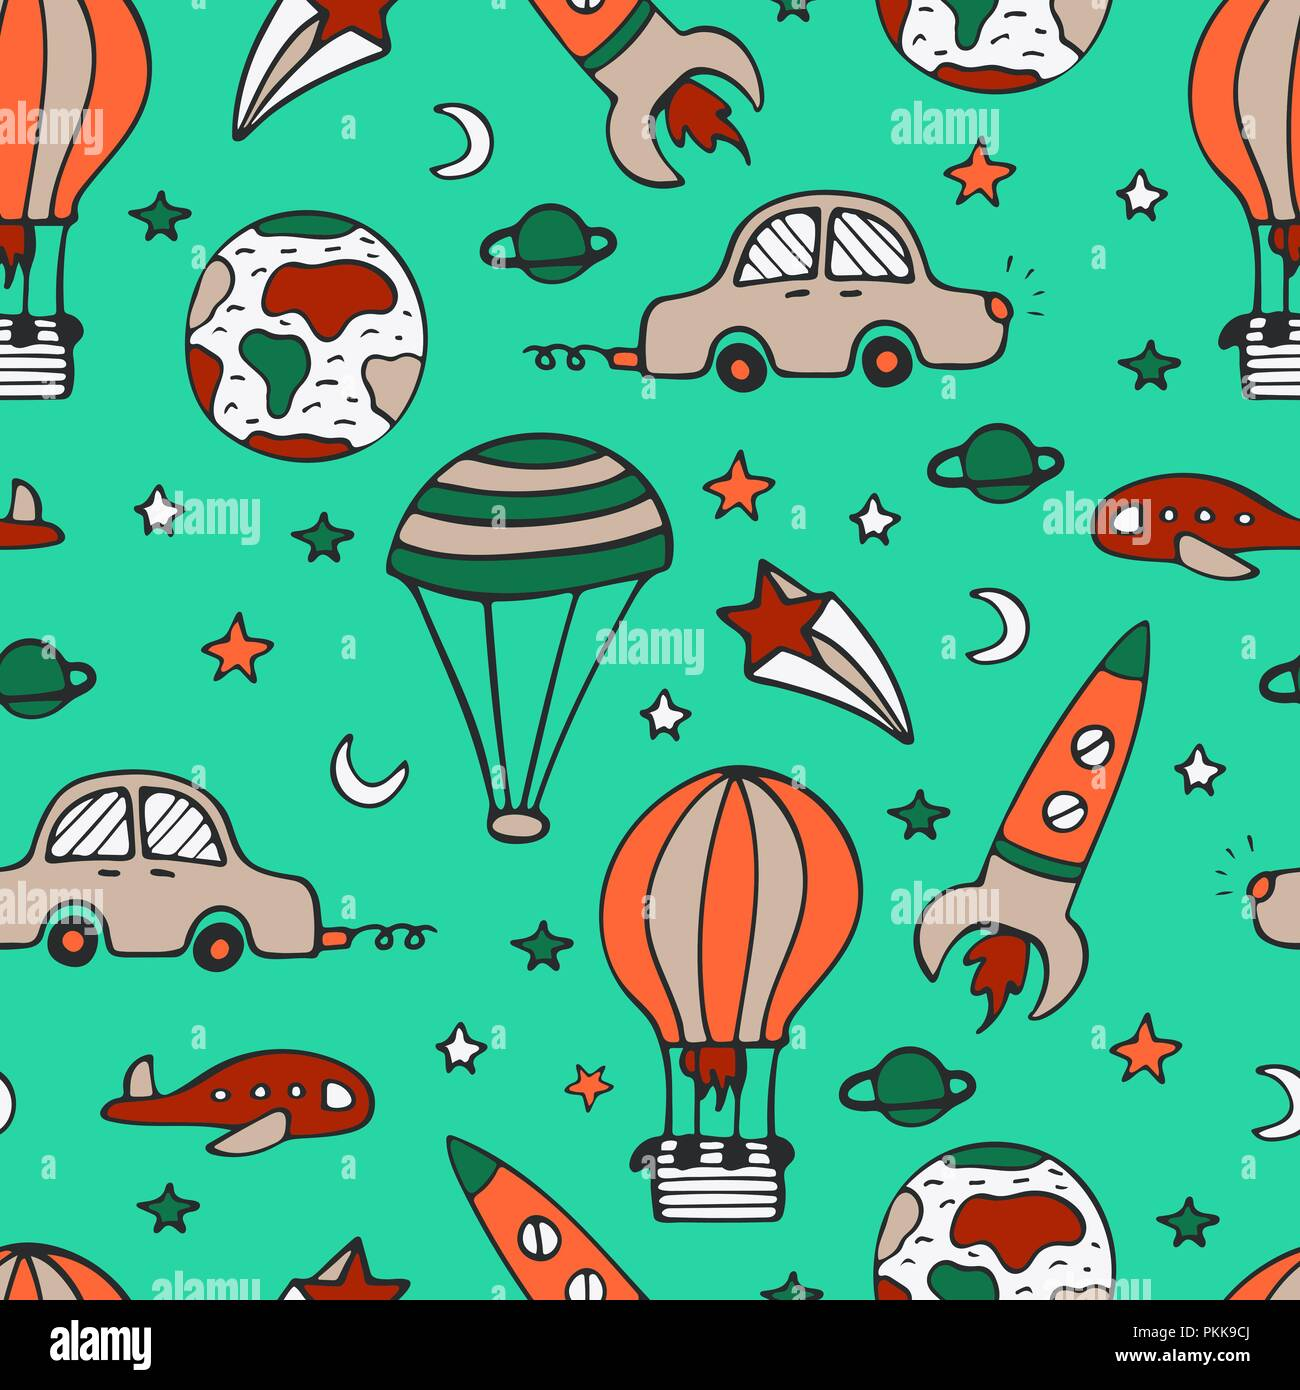 Bright seamless pattern for design with car, a rocket and balloons. Stock Vector